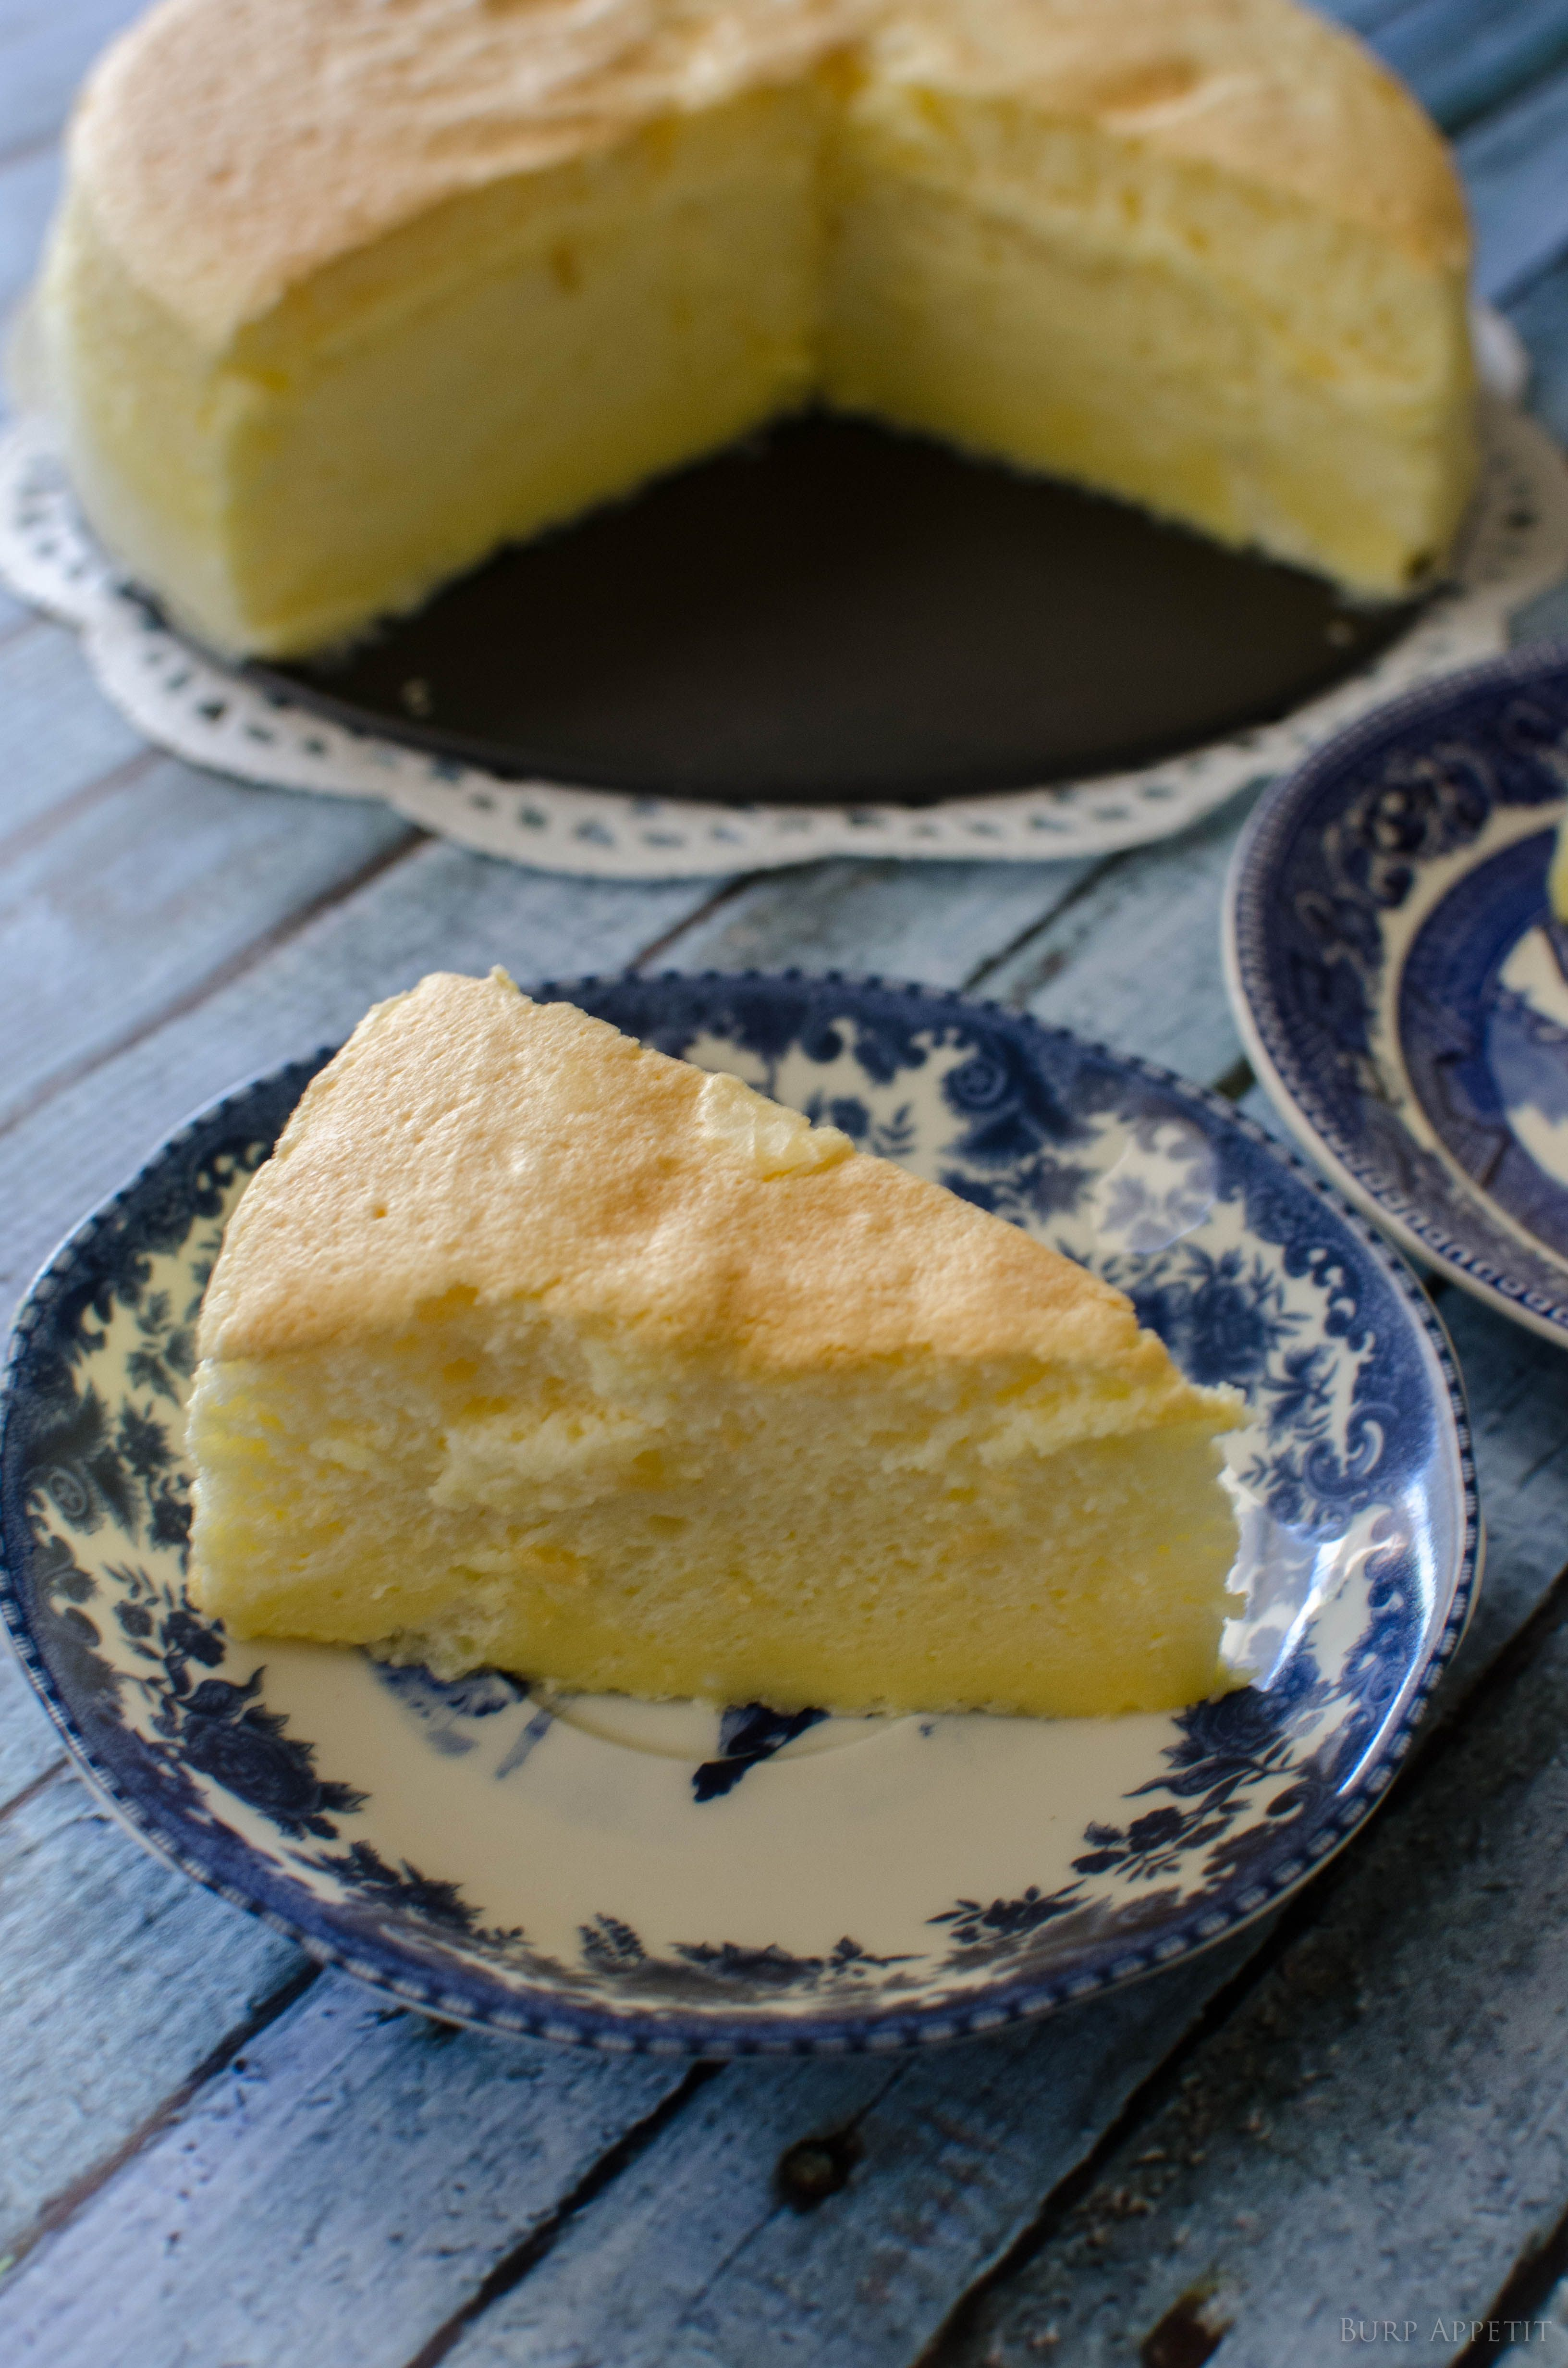 Aaahhhh….soft, melt-in-mouth Japanese Chiffon Cheesecake. It's the first decent cake I've ever baked in my entire life and it was well worth the effort. We finished the entire c…